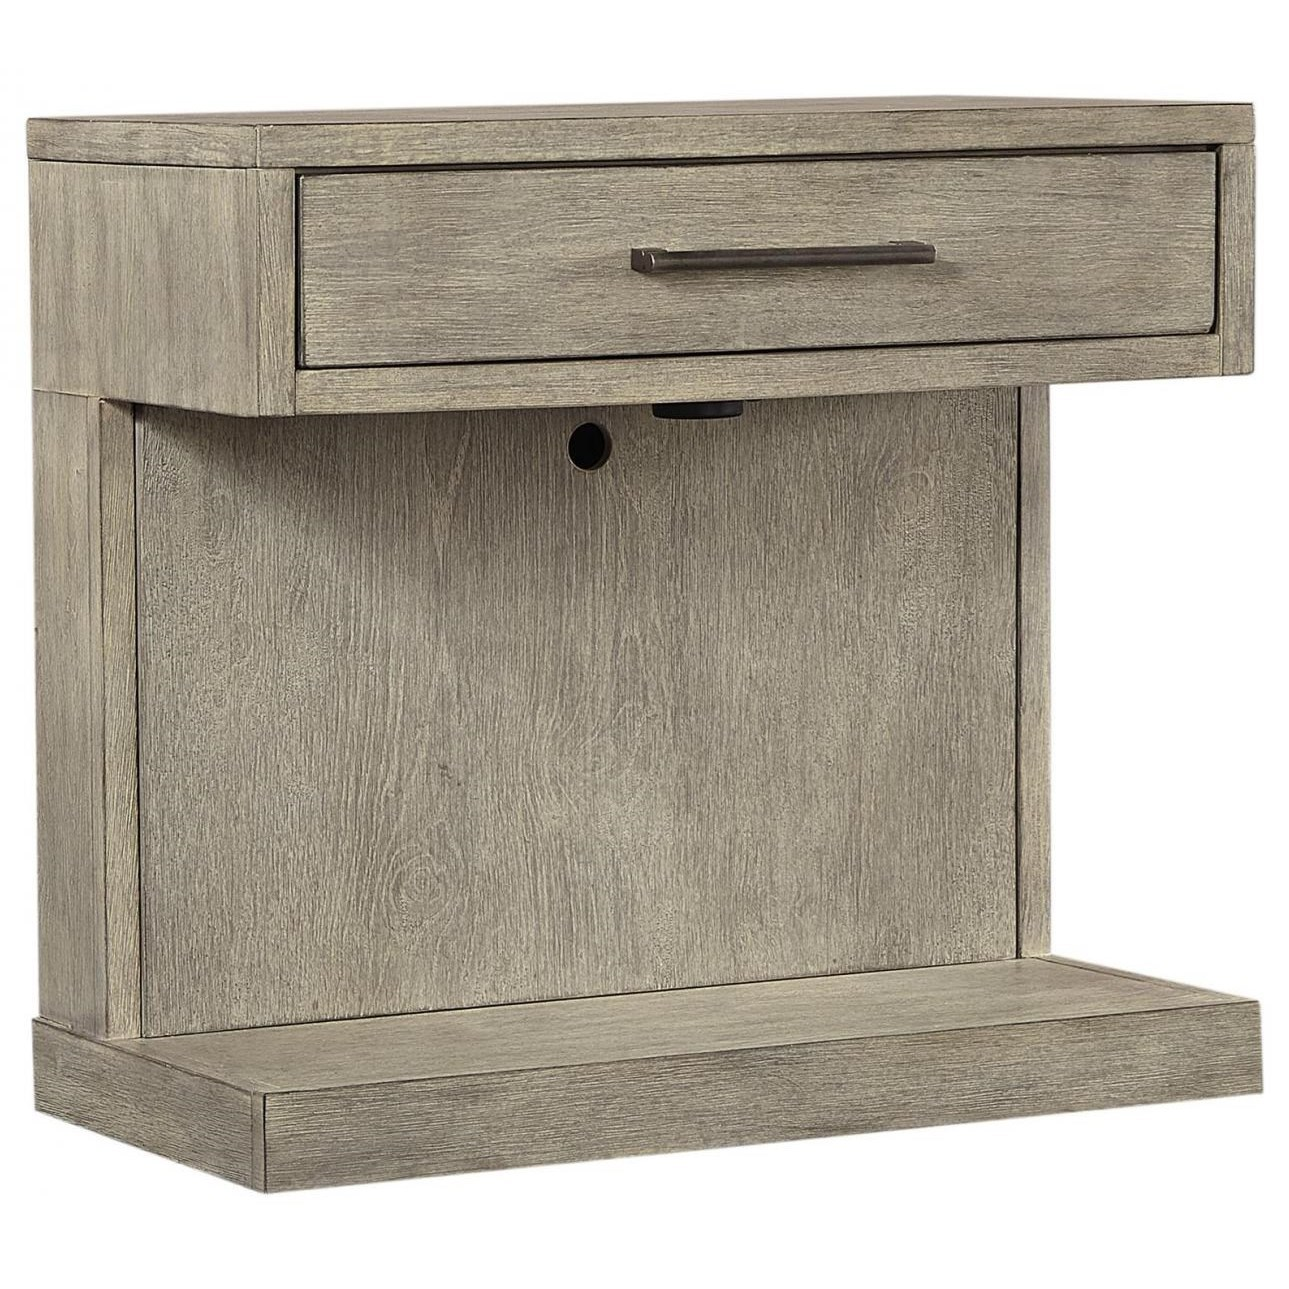 Platinum Nightstand by Aspenhome at Walker's Furniture